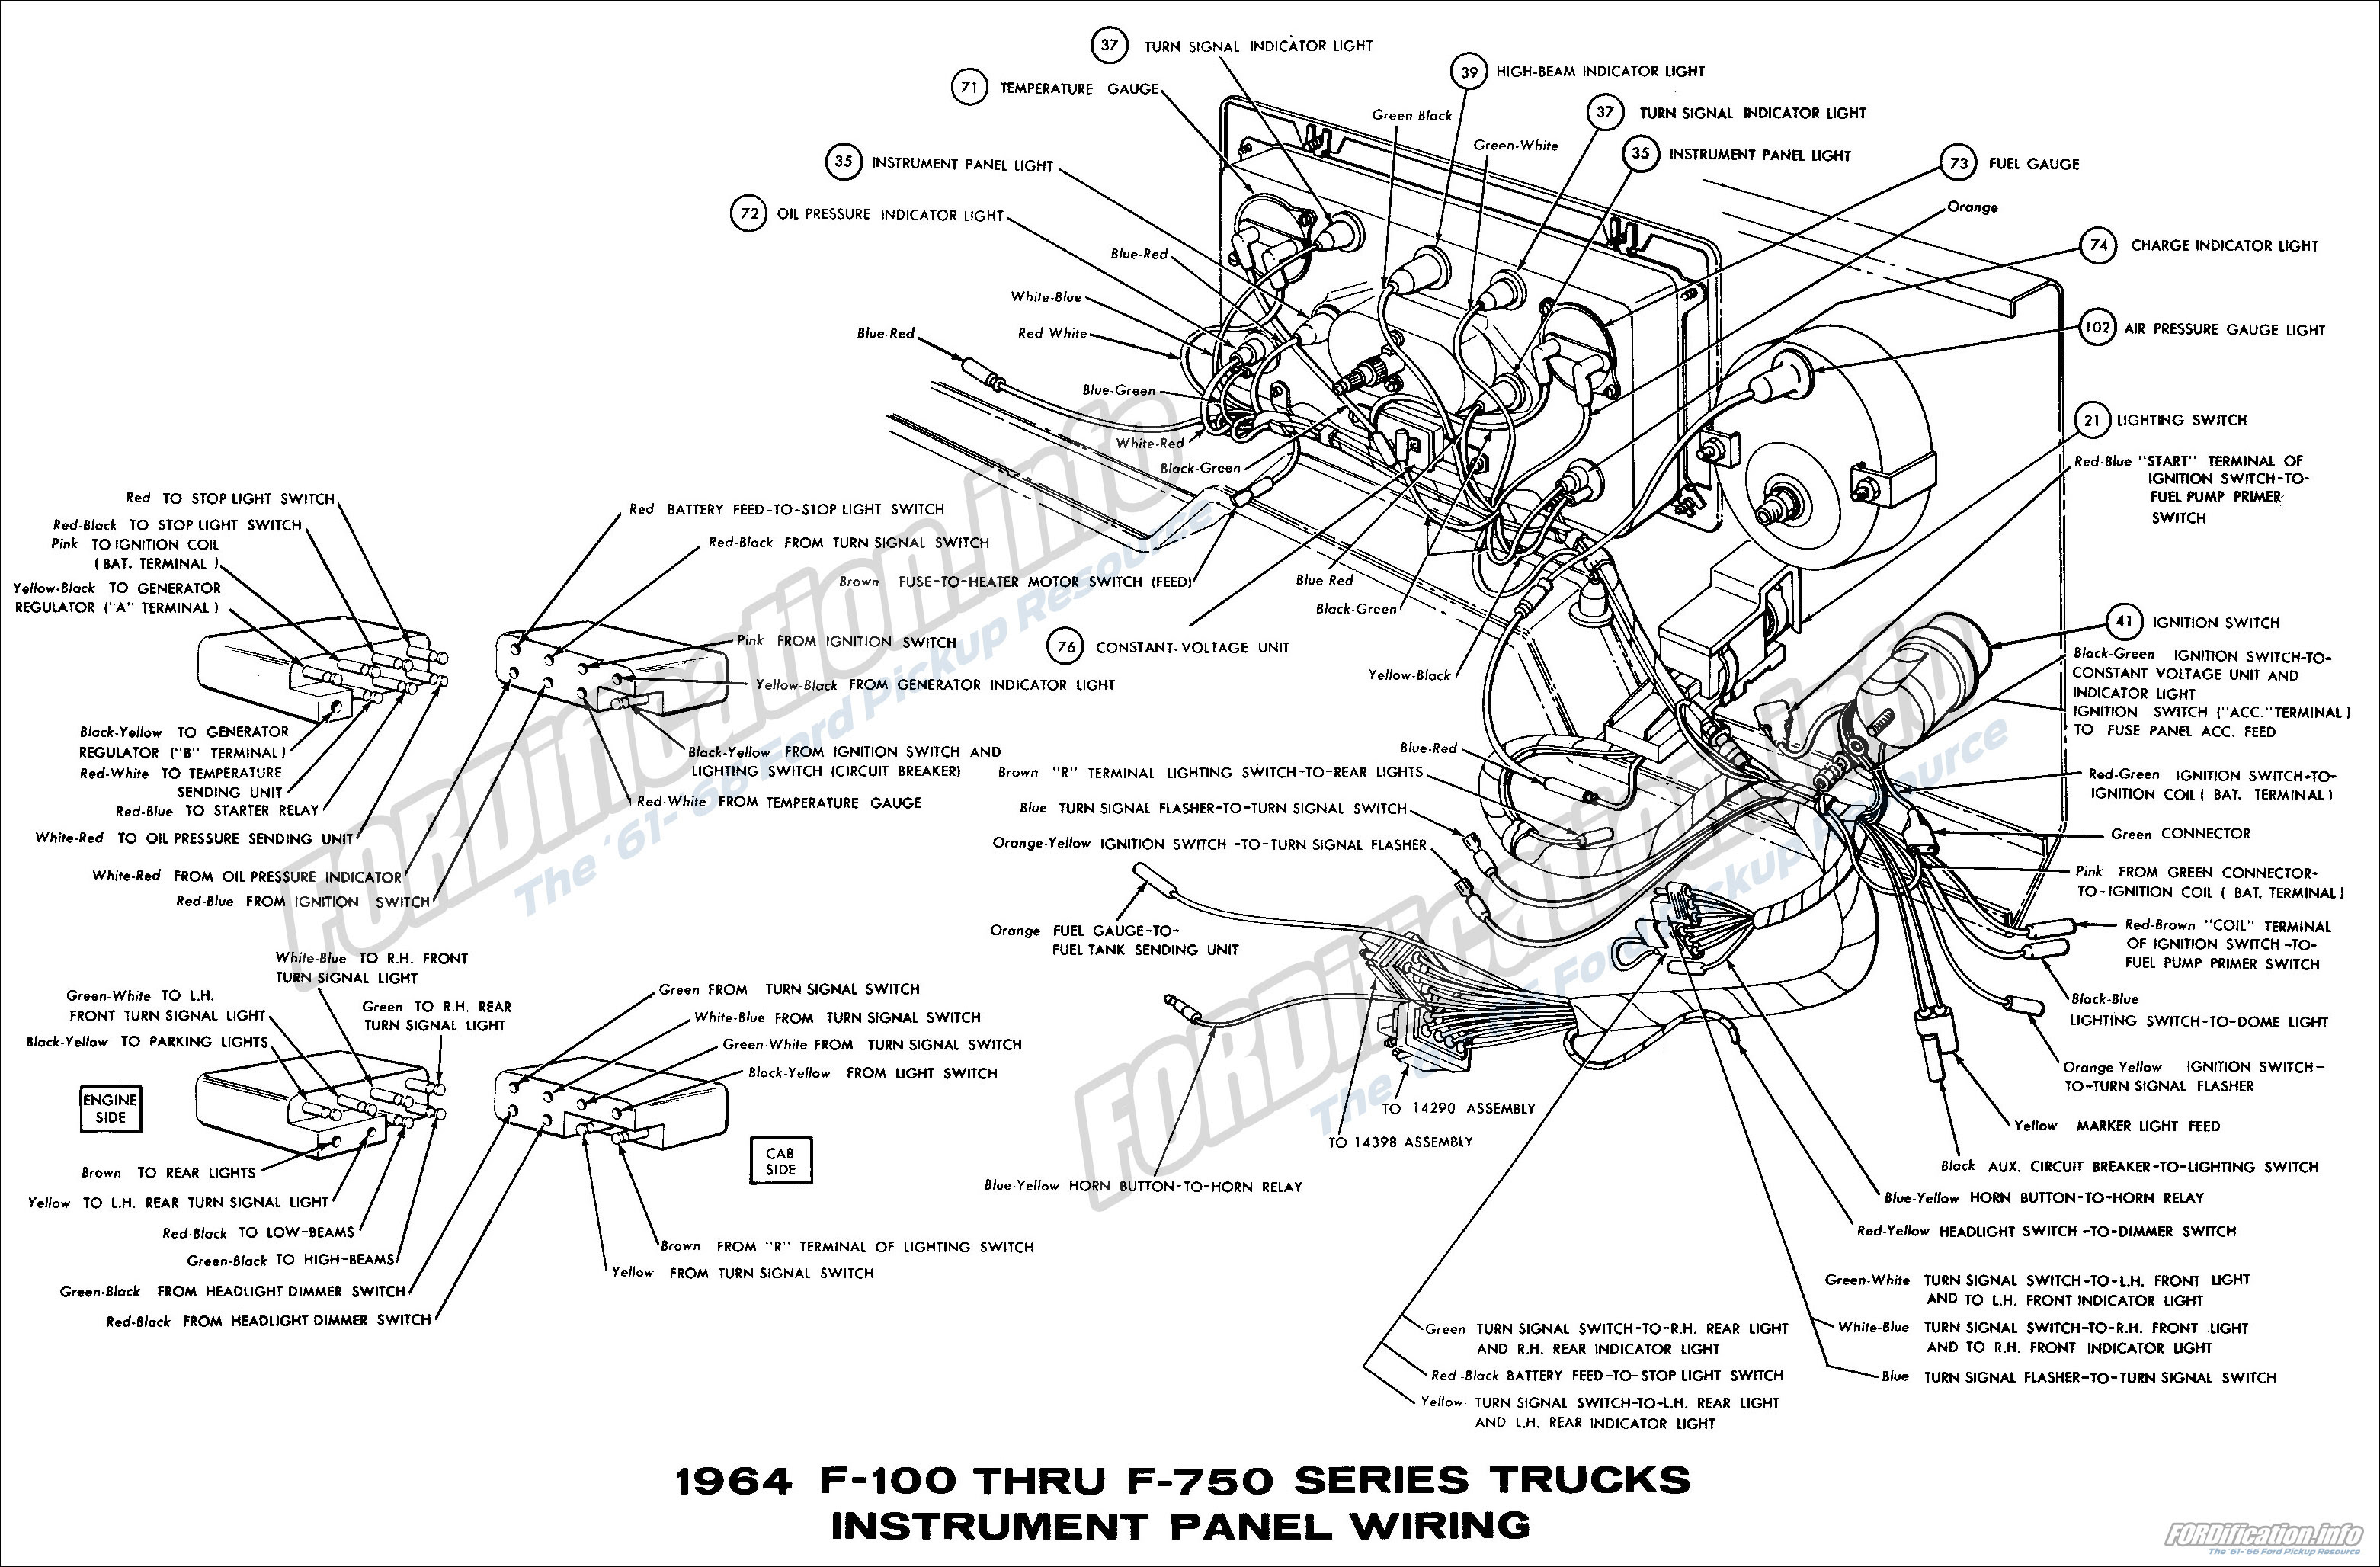 1964 Ford F100 Wiring Schematic Wiring Diagram Inspection Inspection Consorziofiuggiturismo It